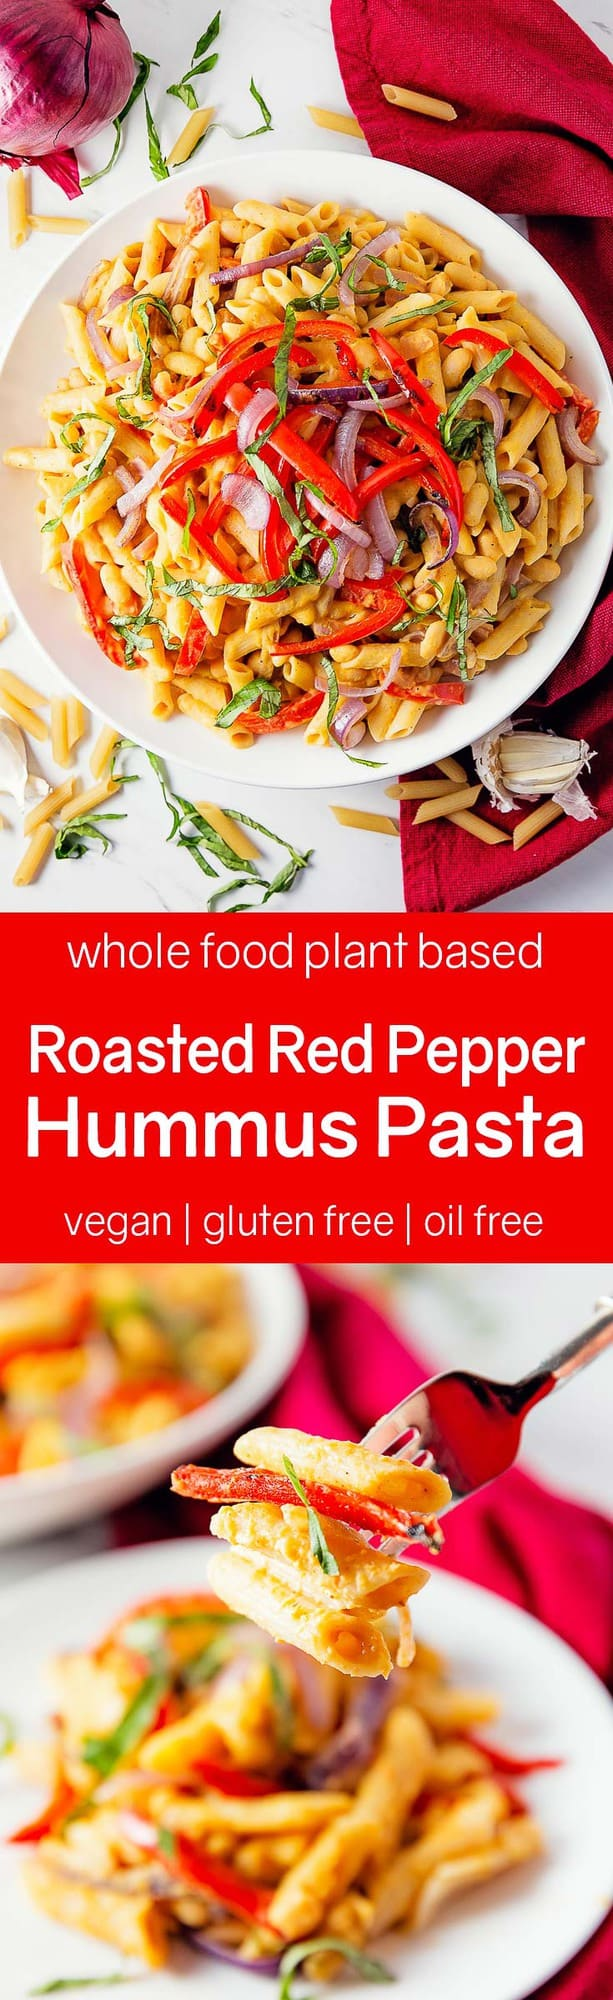 roasted red pepper hummus pasta, vegan, vegetarian, whole food plant based, gluten free, recipe, wfpb, healthy, oil free, no refined sugar, no oil, refined sugar free, dinner, side, side dish, dairy free, entertaining, dinner party